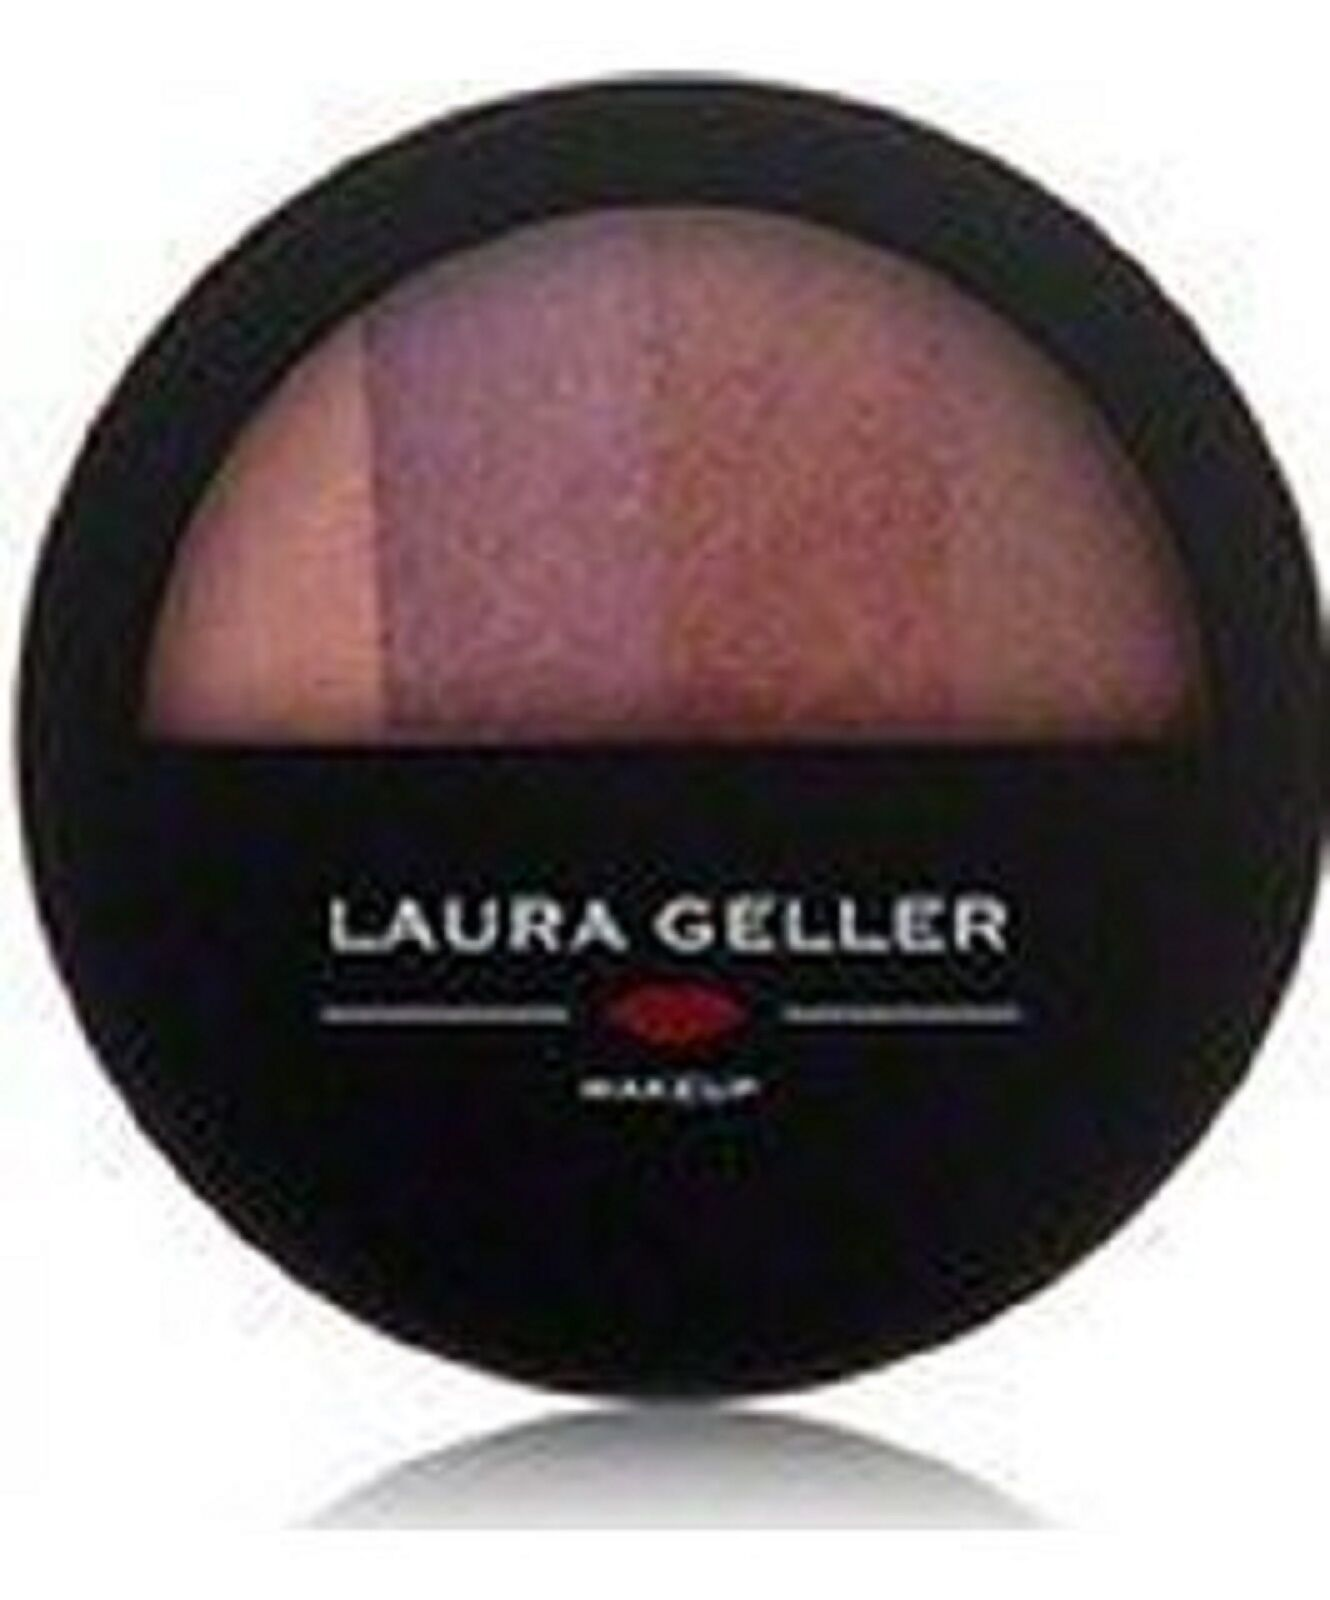 Dream Creams Lip Palette With Retractable Lip Brush - Apricot Berry by Laura Geller #17